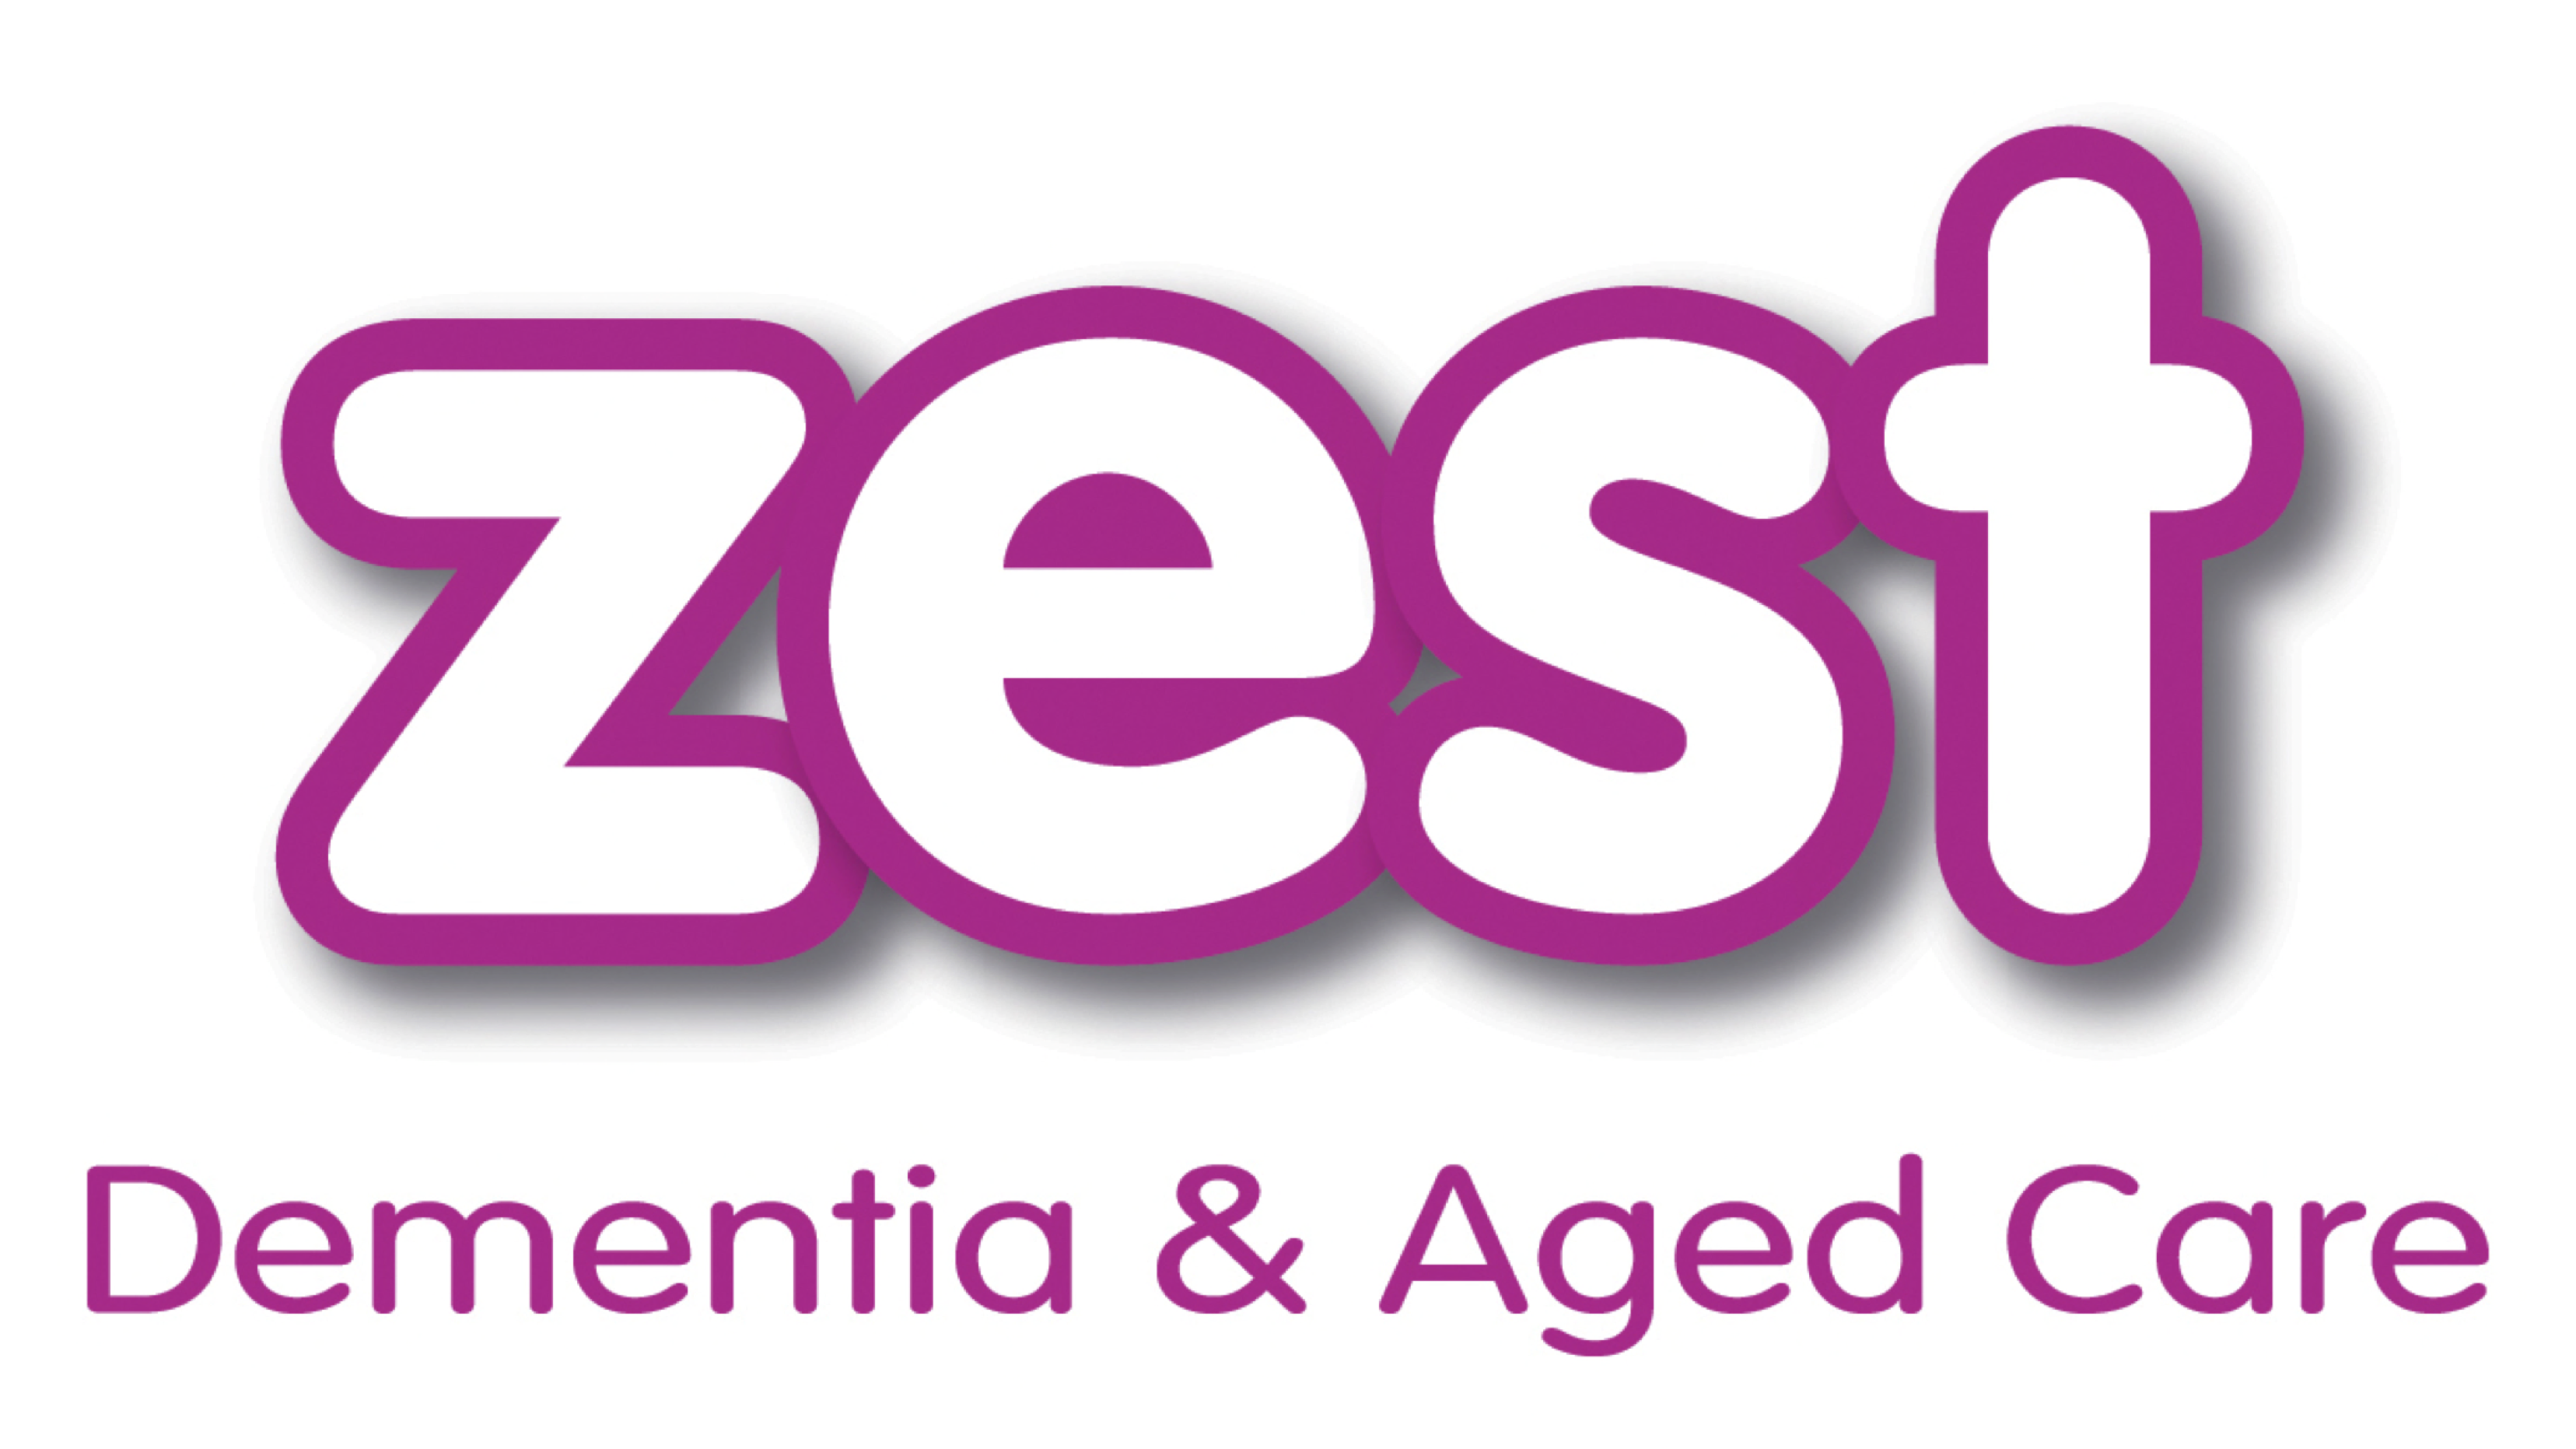 ZEST Dementia & Aged Care